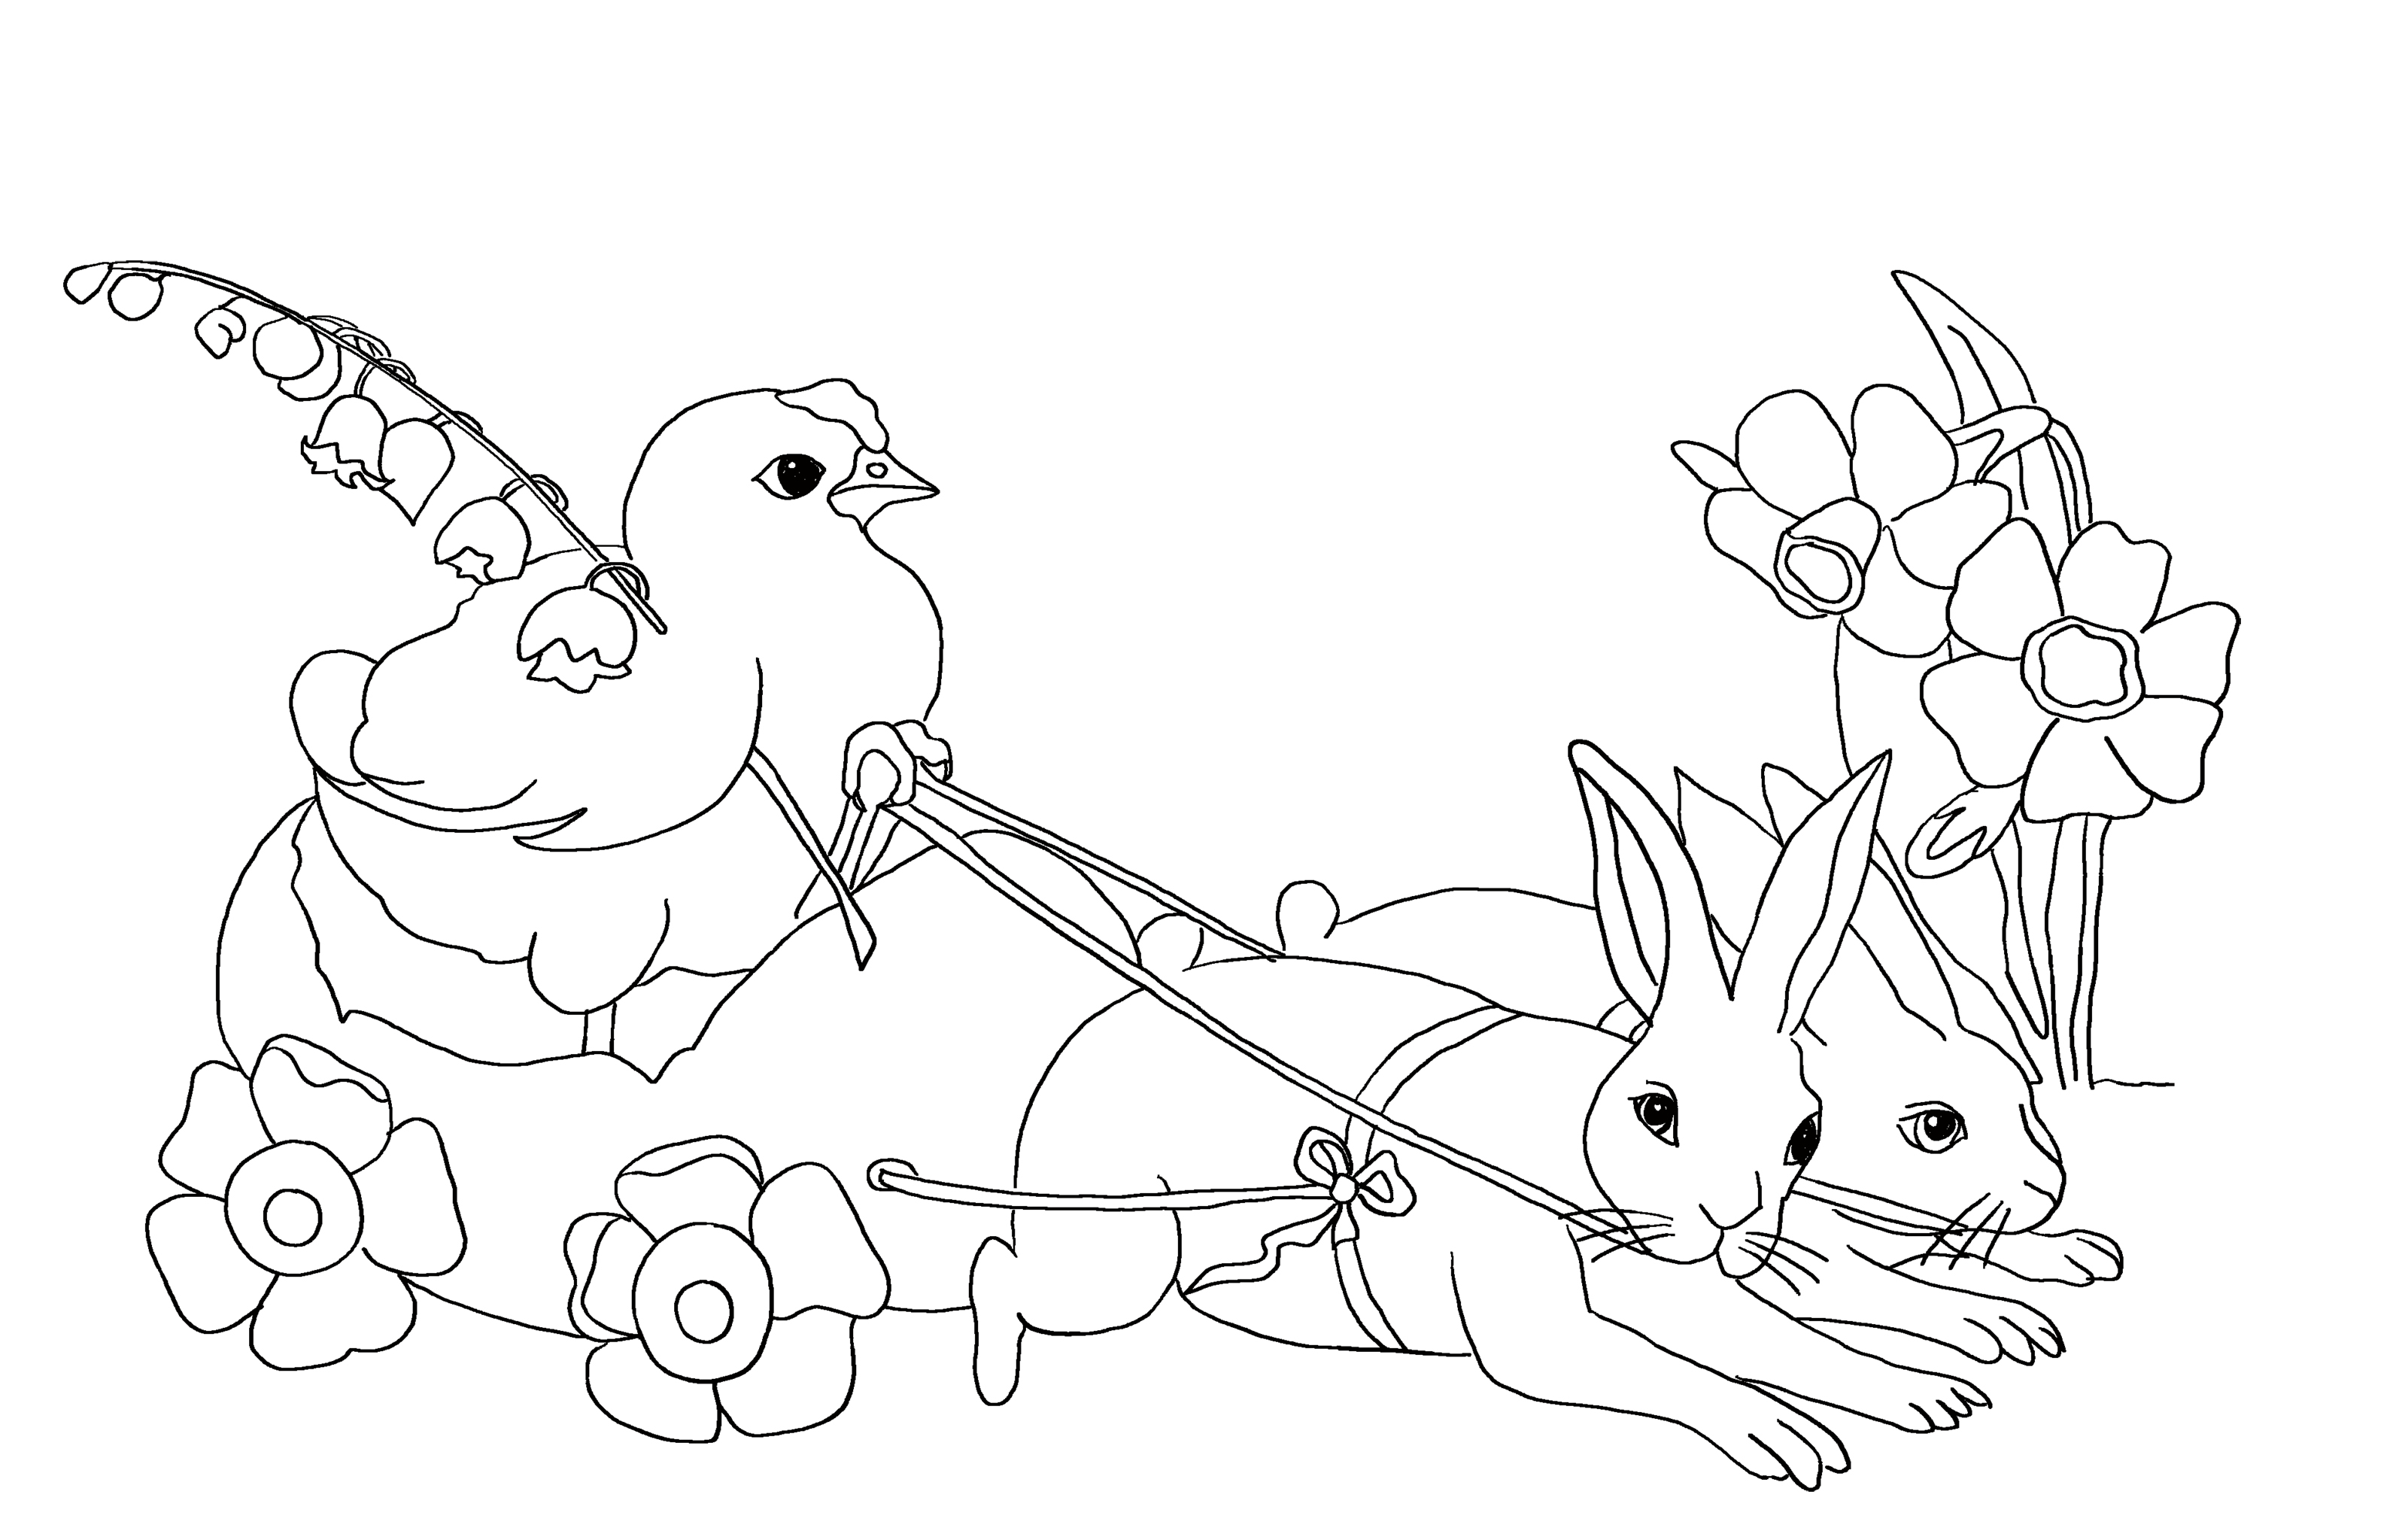 Coloring page for Easter: Two hares pulling a cart with a mother hen.